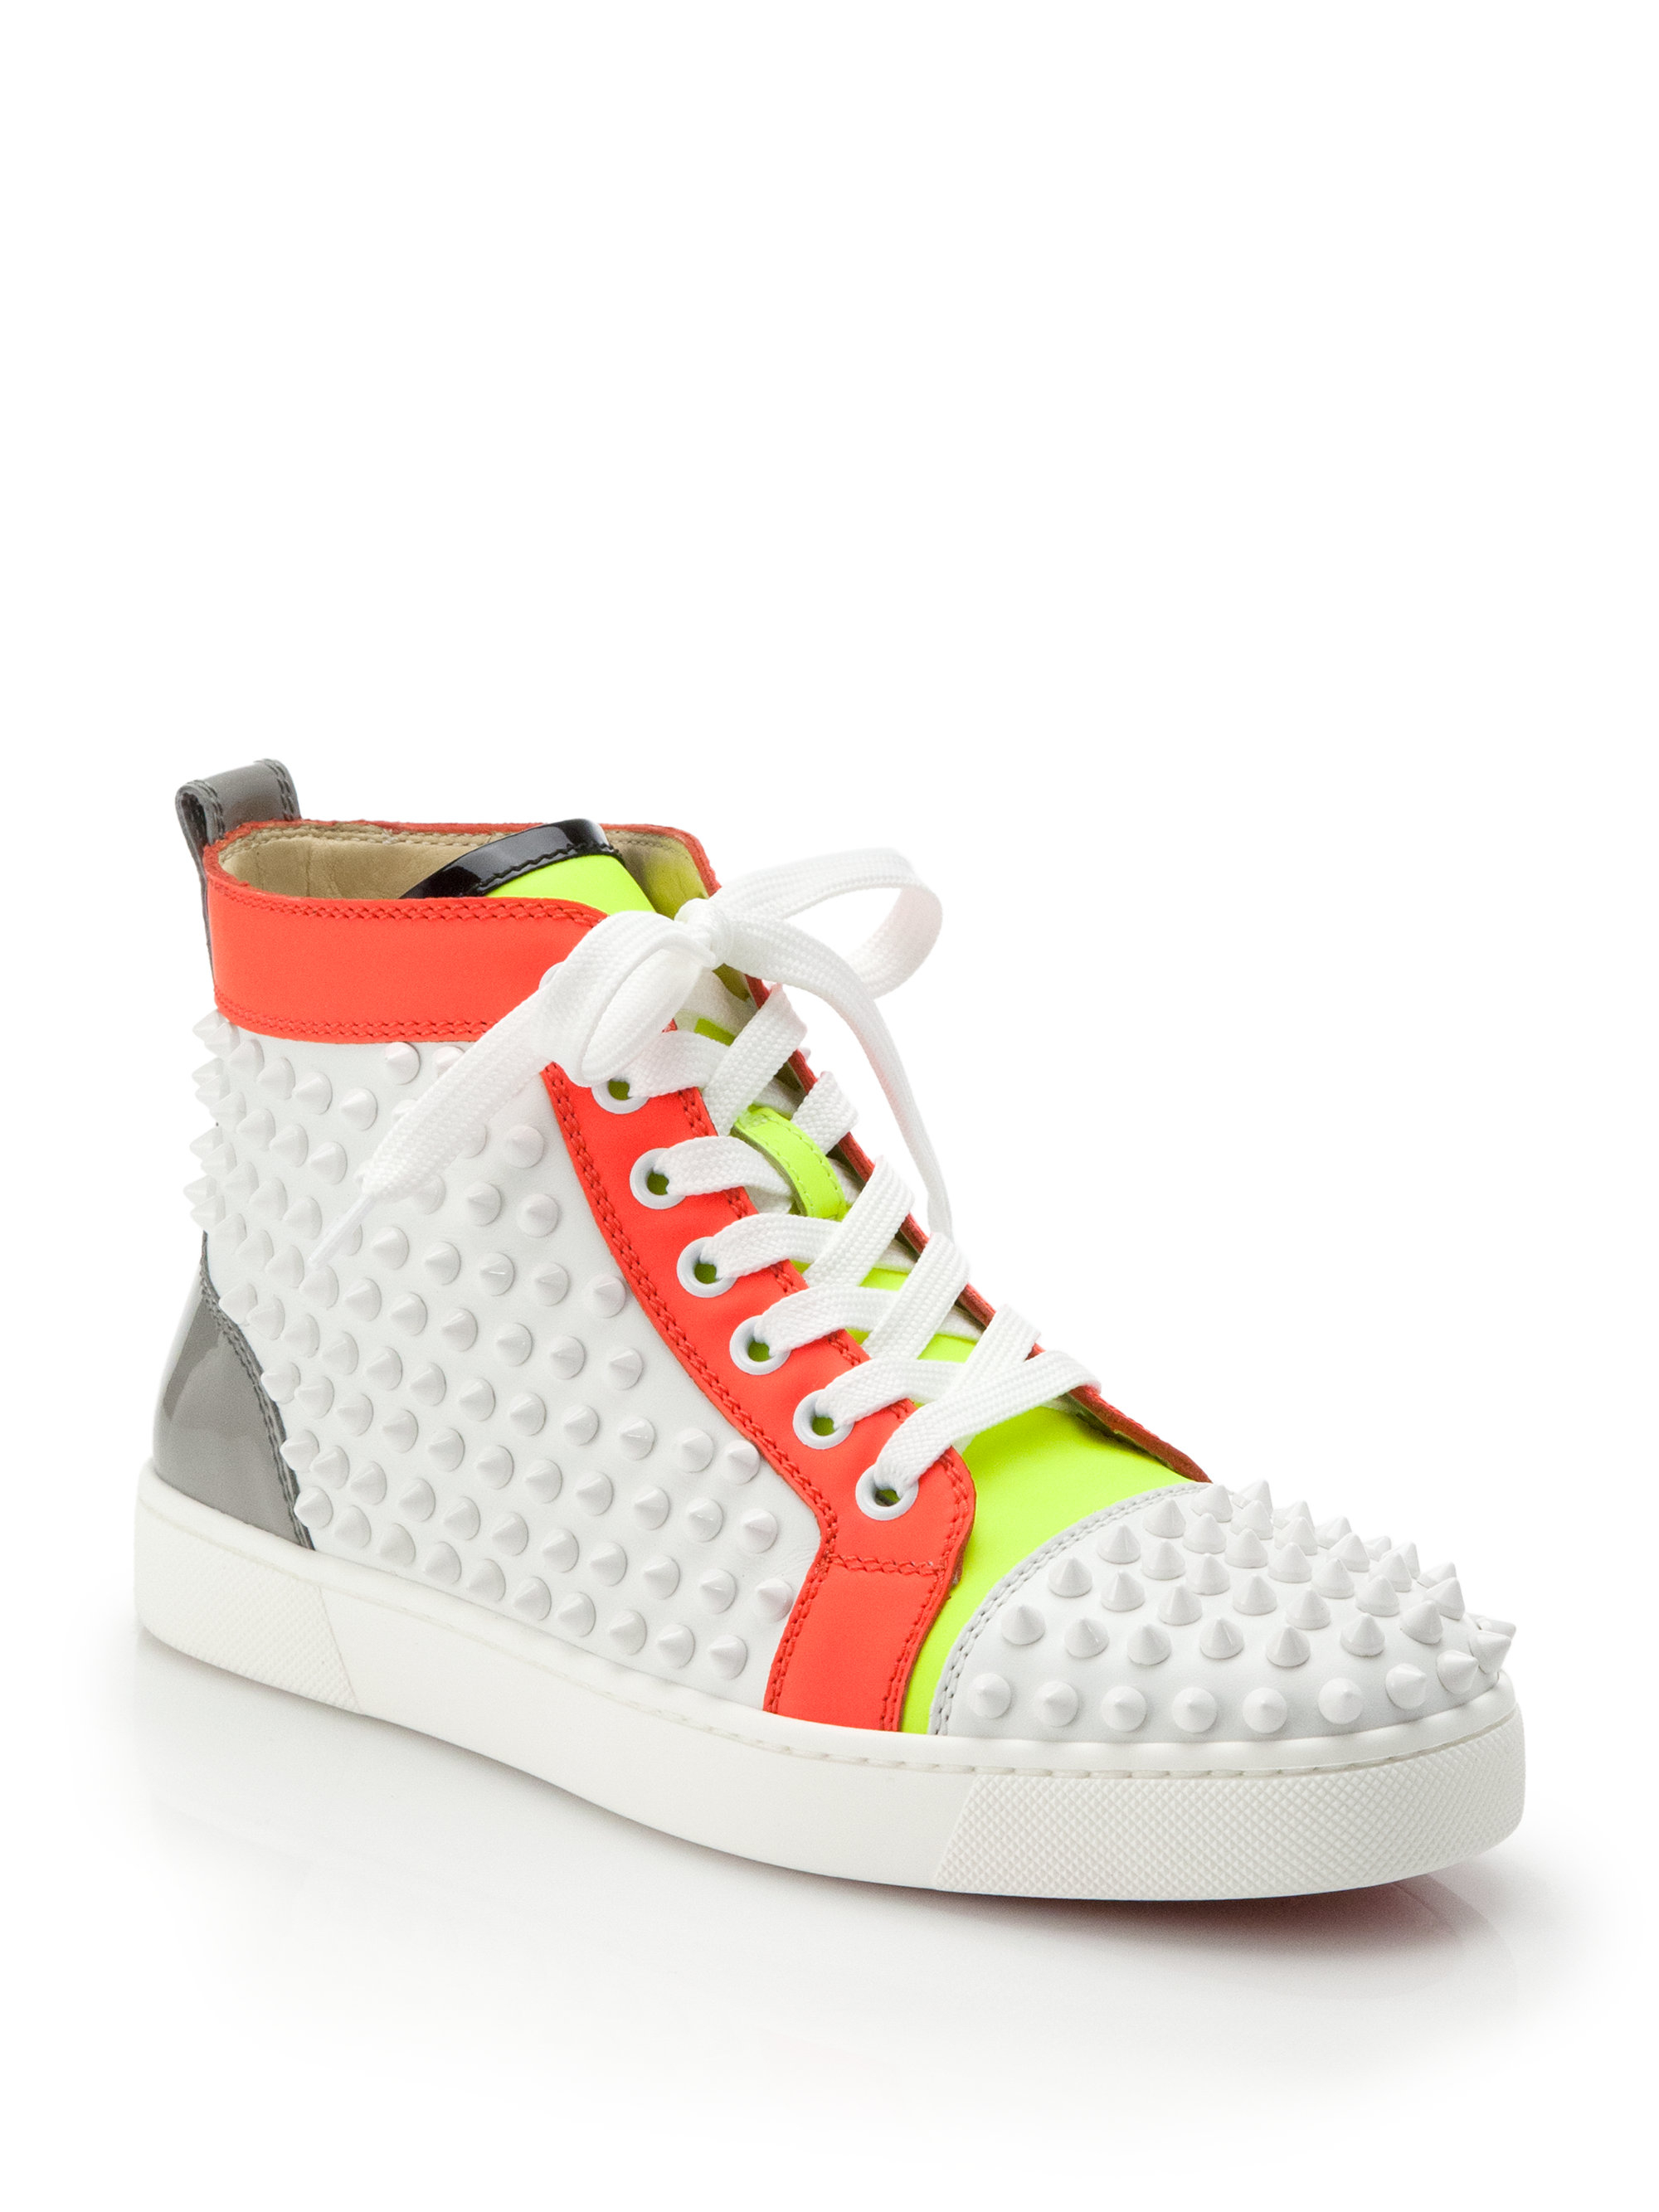 Lyst - Christian Louboutin Louis Woman Studded Colorblock Leather ... 69362891ab